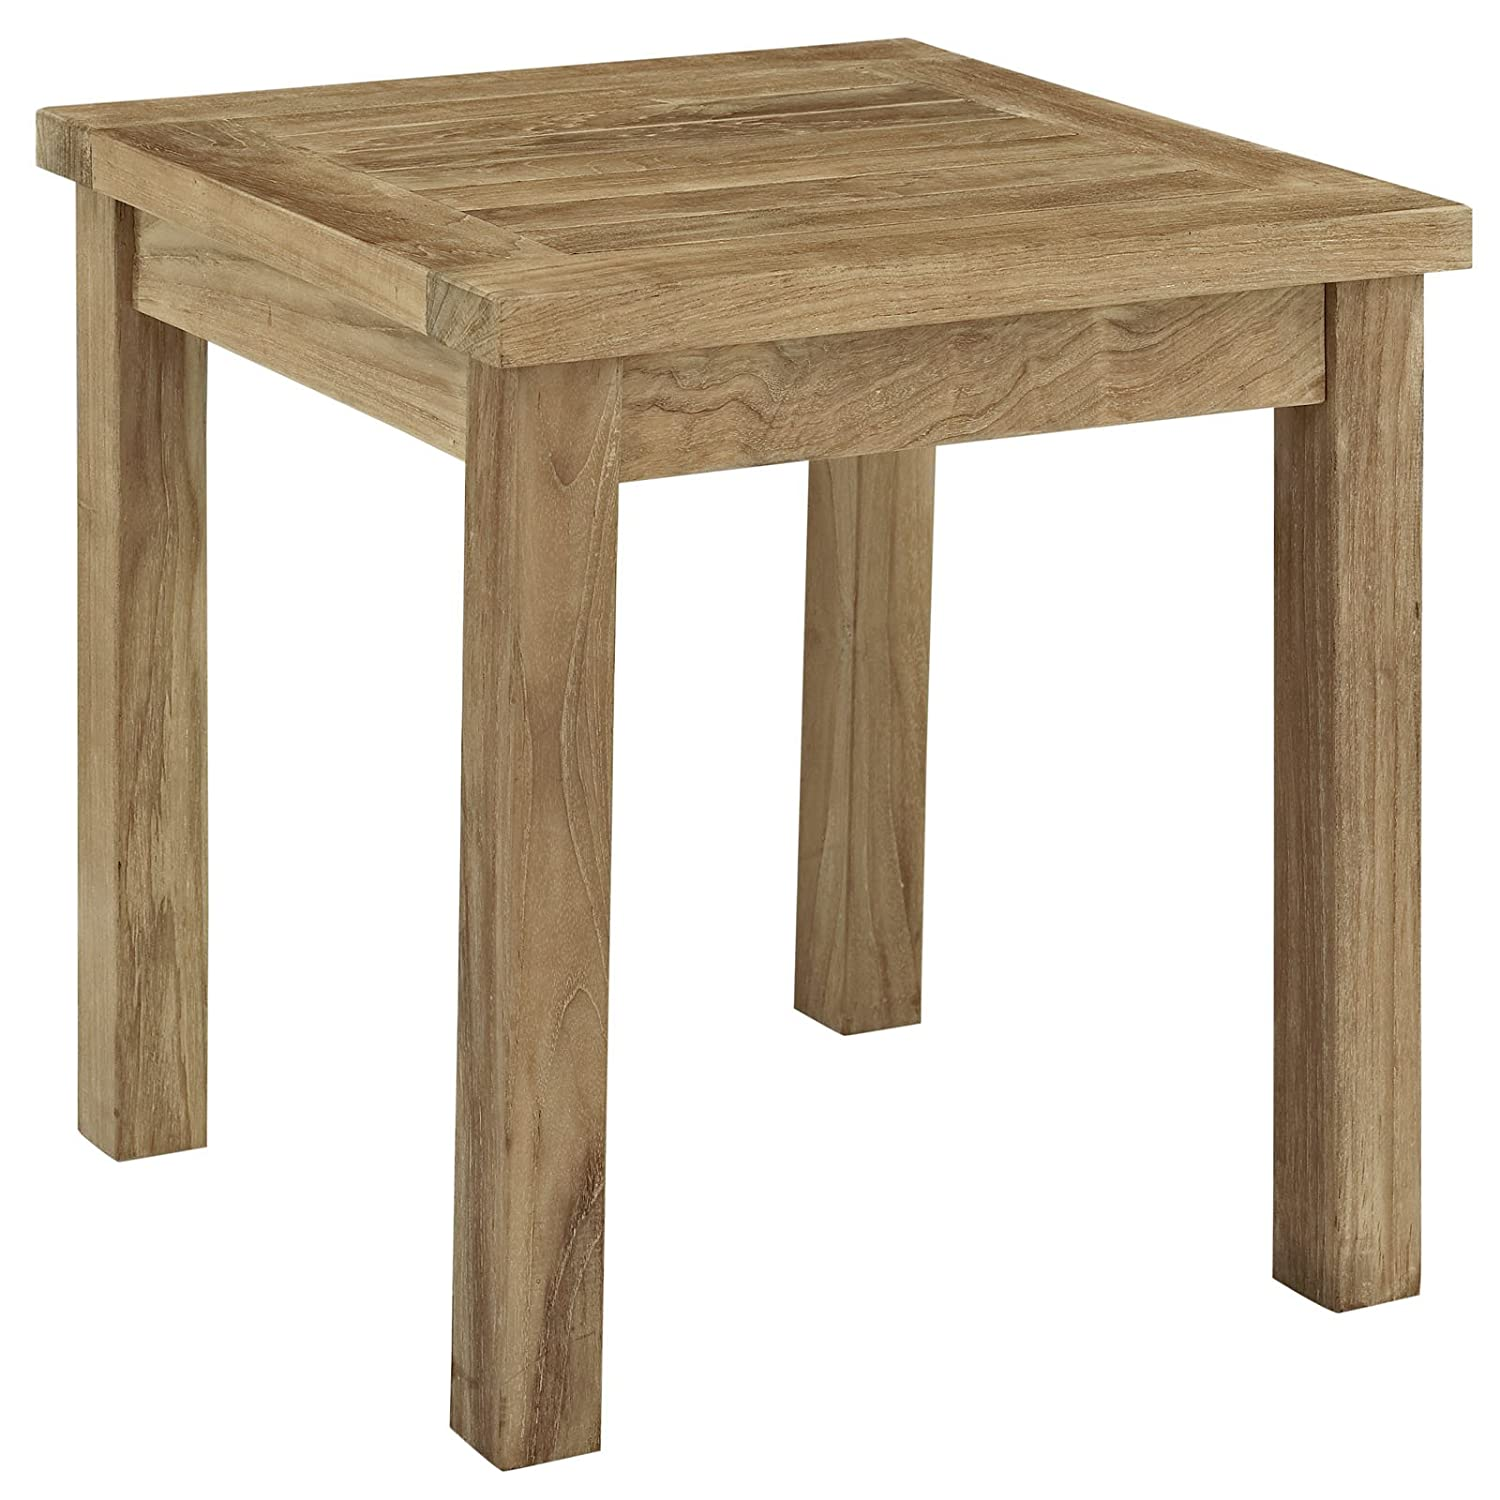 Superb Amazon.com: Modway Marina Teak Wood Outdoor Patio Side Table In Natural:  Kitchen U0026 Dining